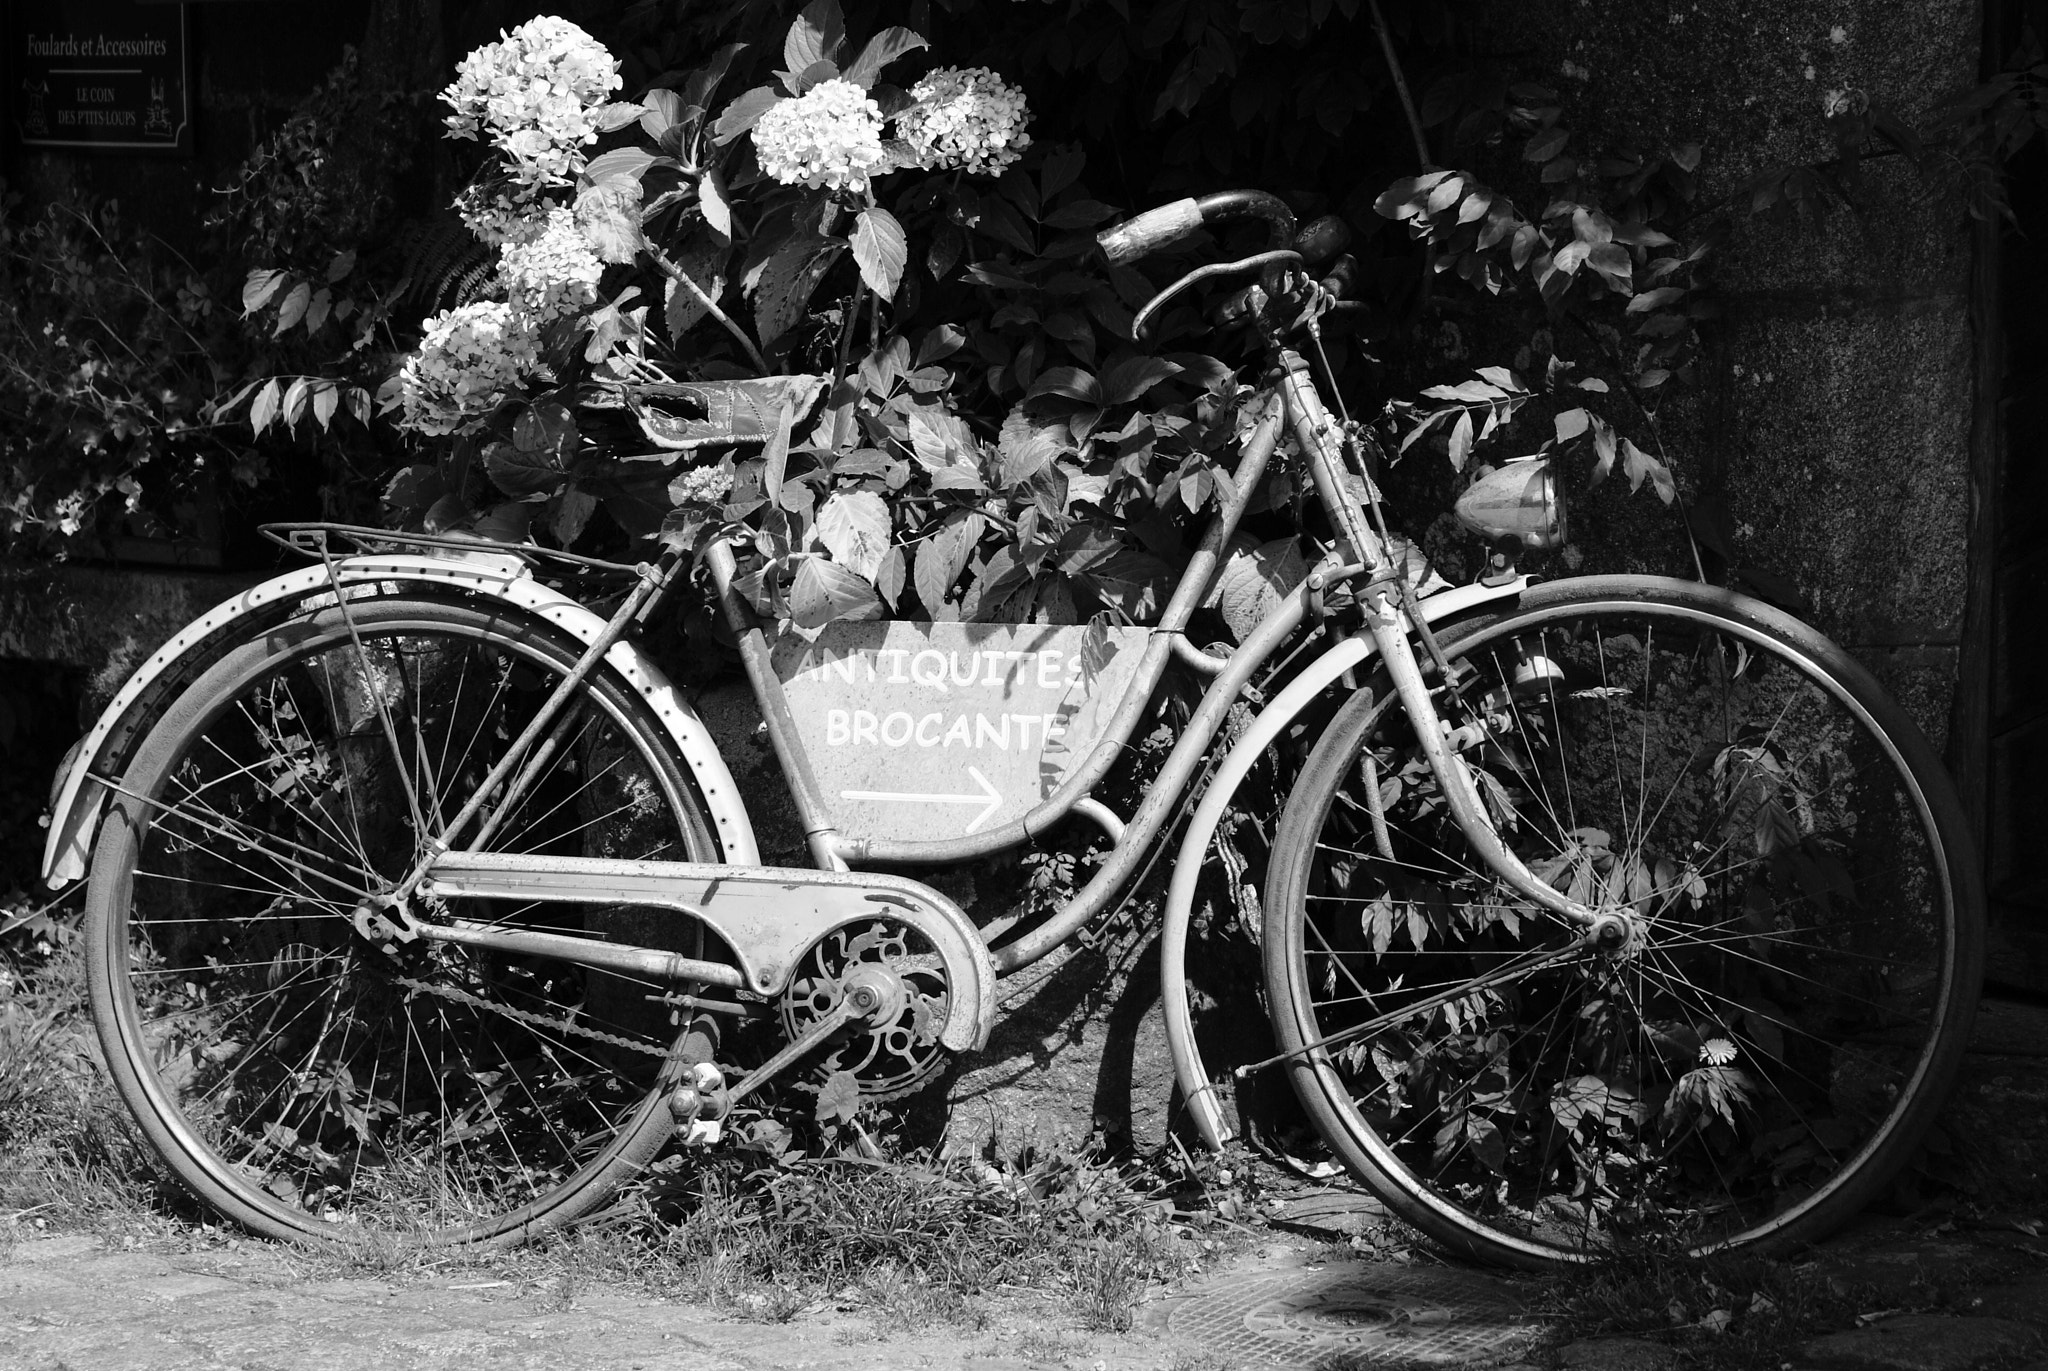 Photograph Vieux Cycle by David Nickson on 500px